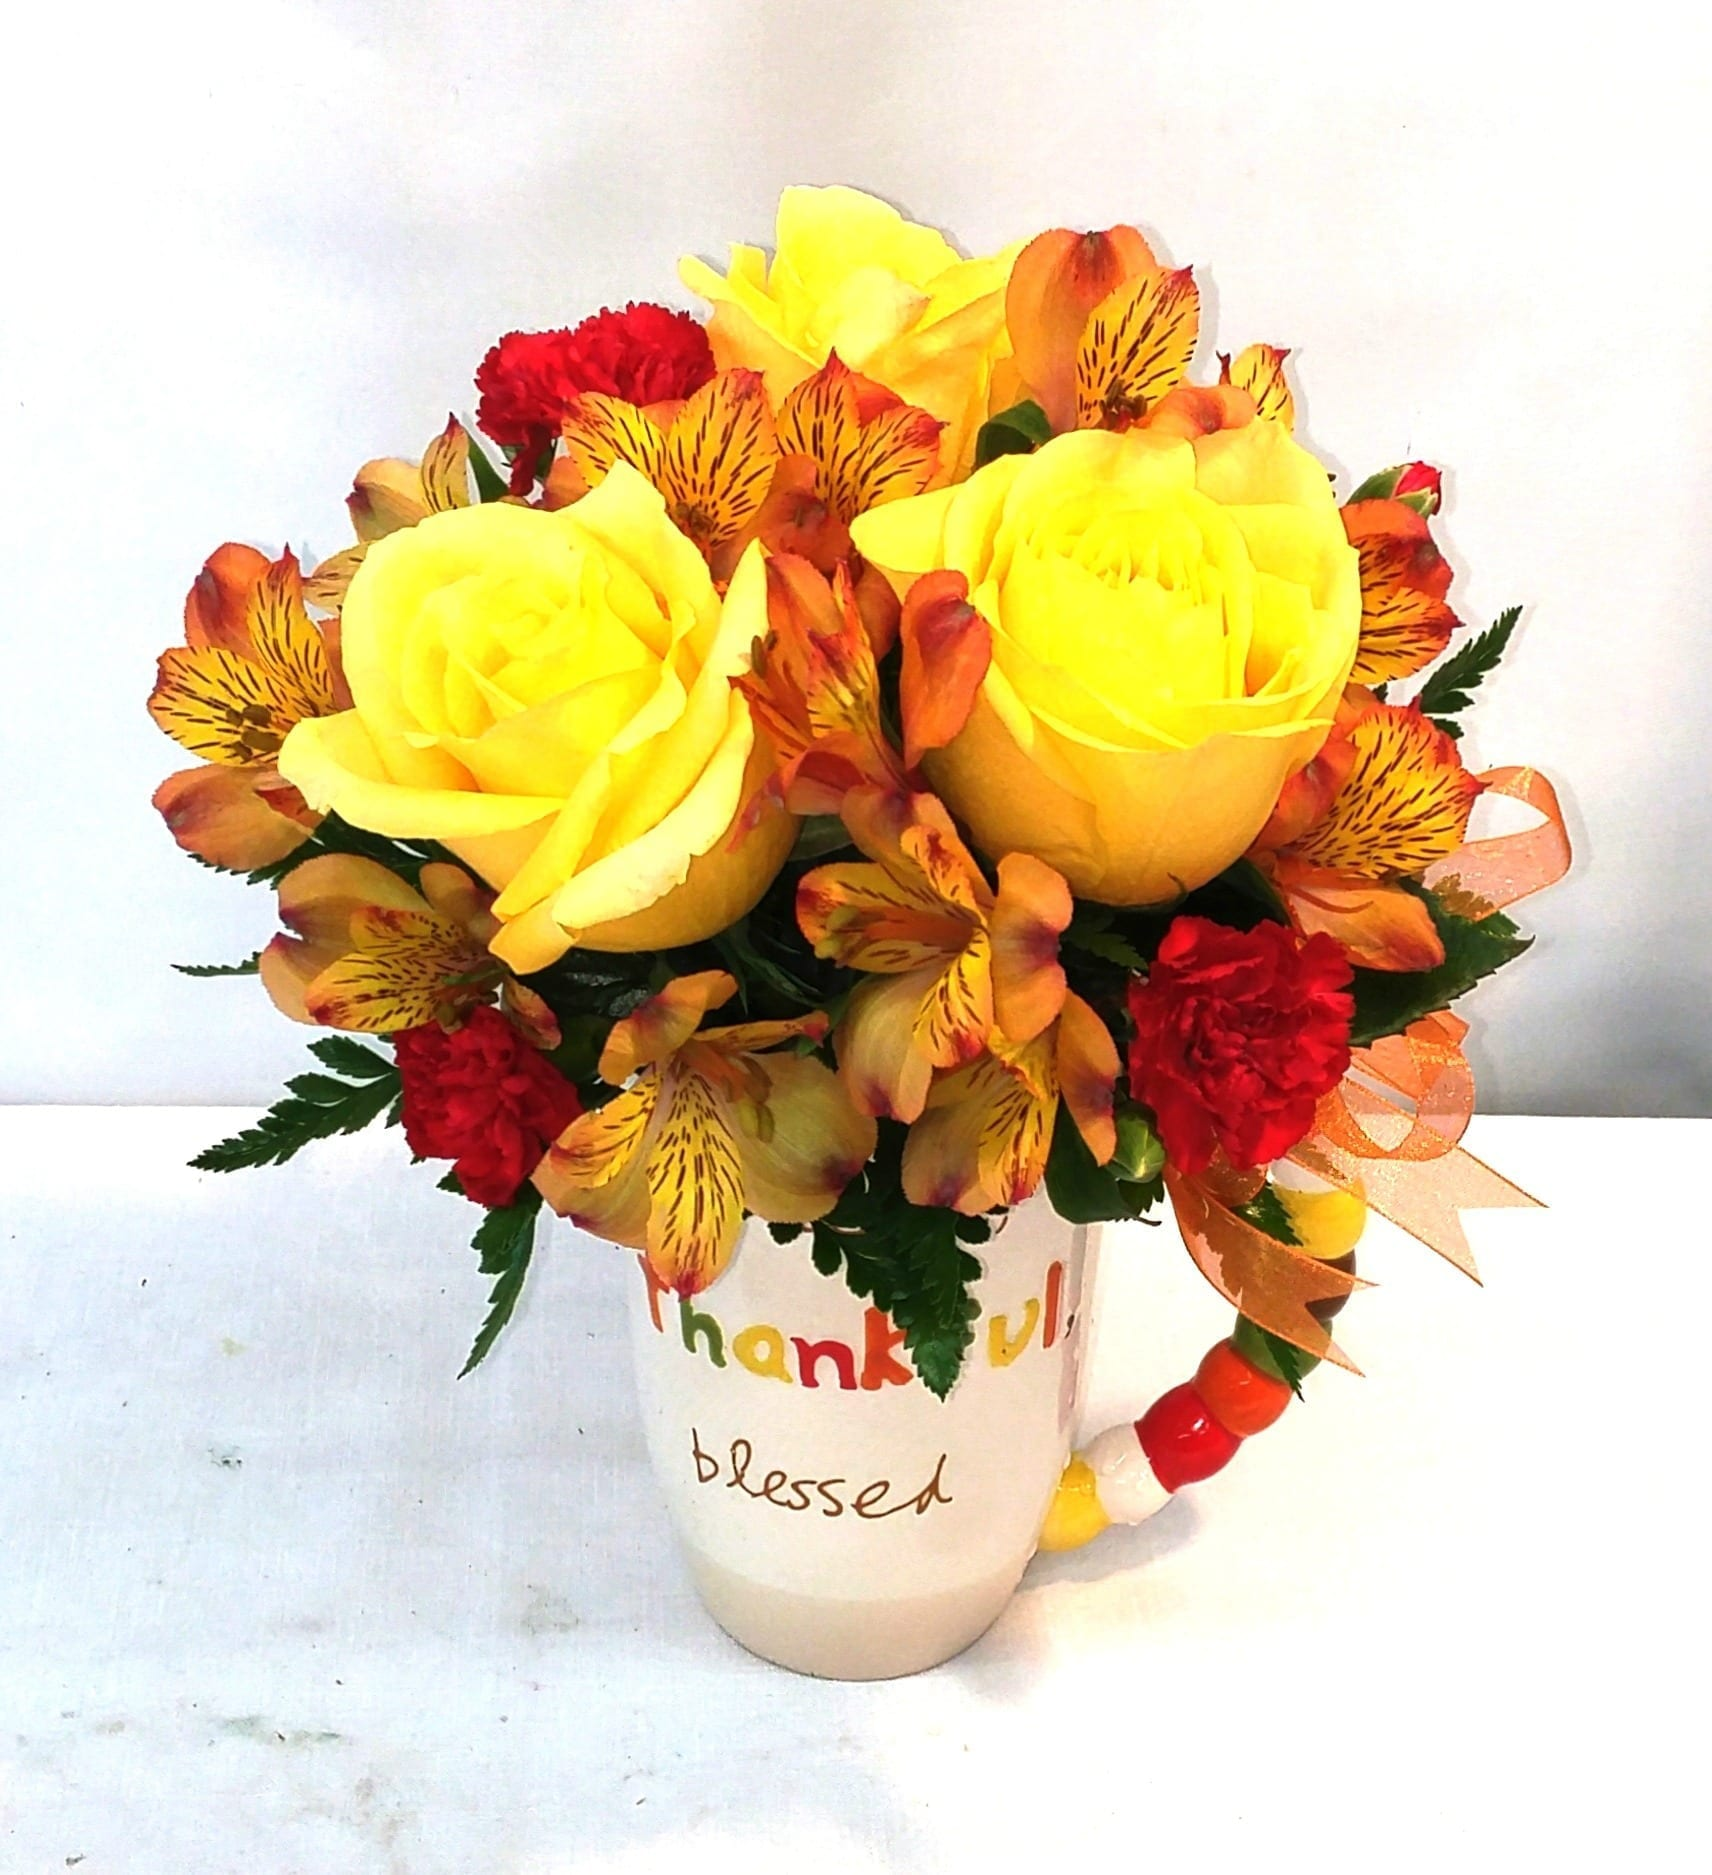 Thankful Mug Bouquet